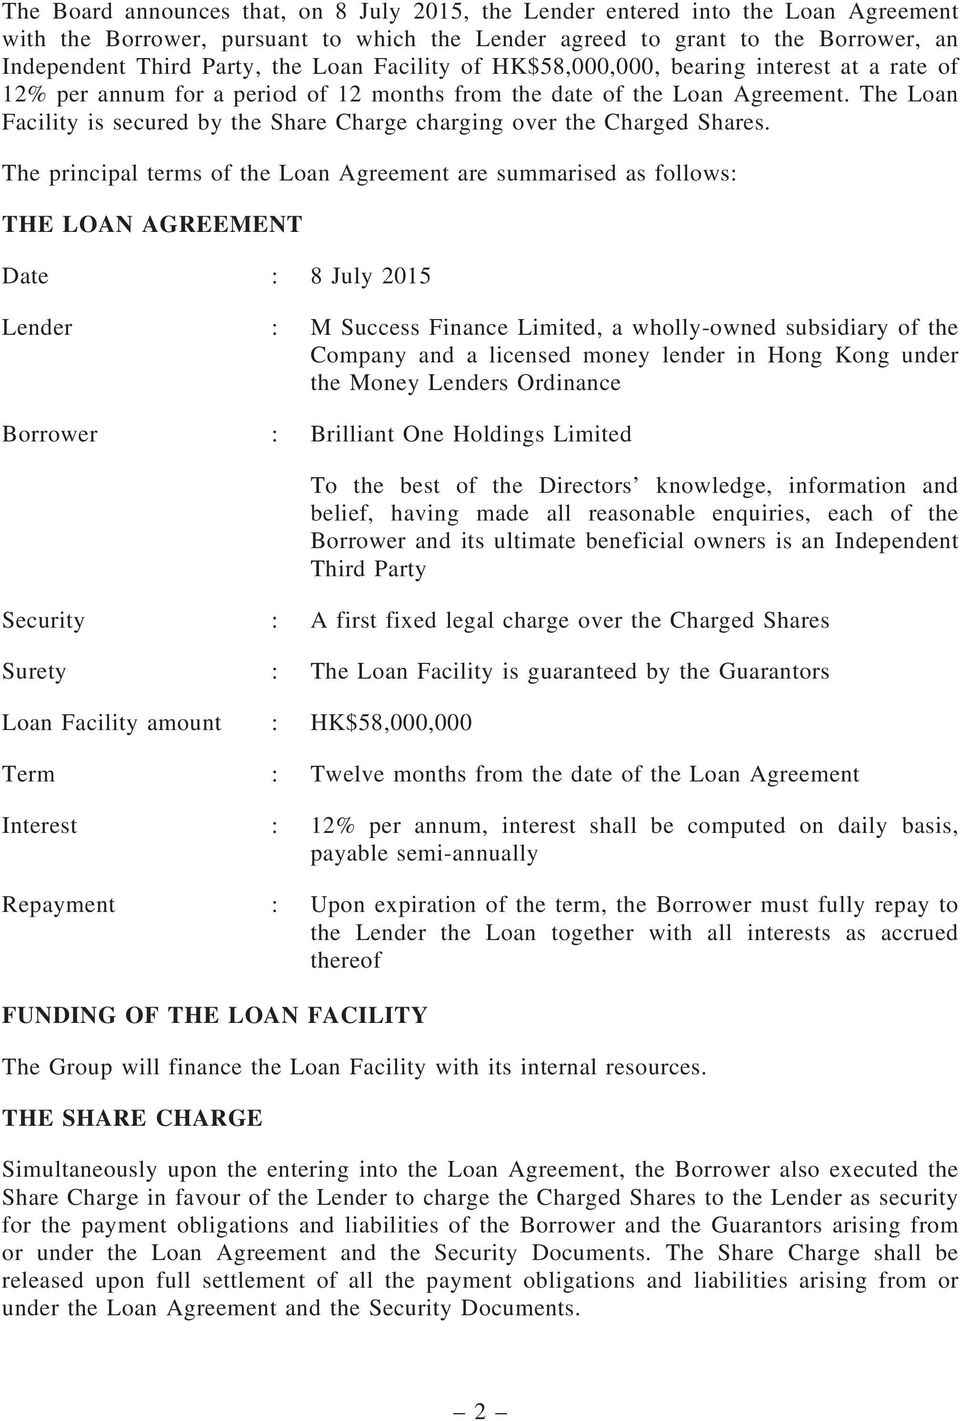 The Loan Facility is secured by the Share Charge charging over the Charged Shares.